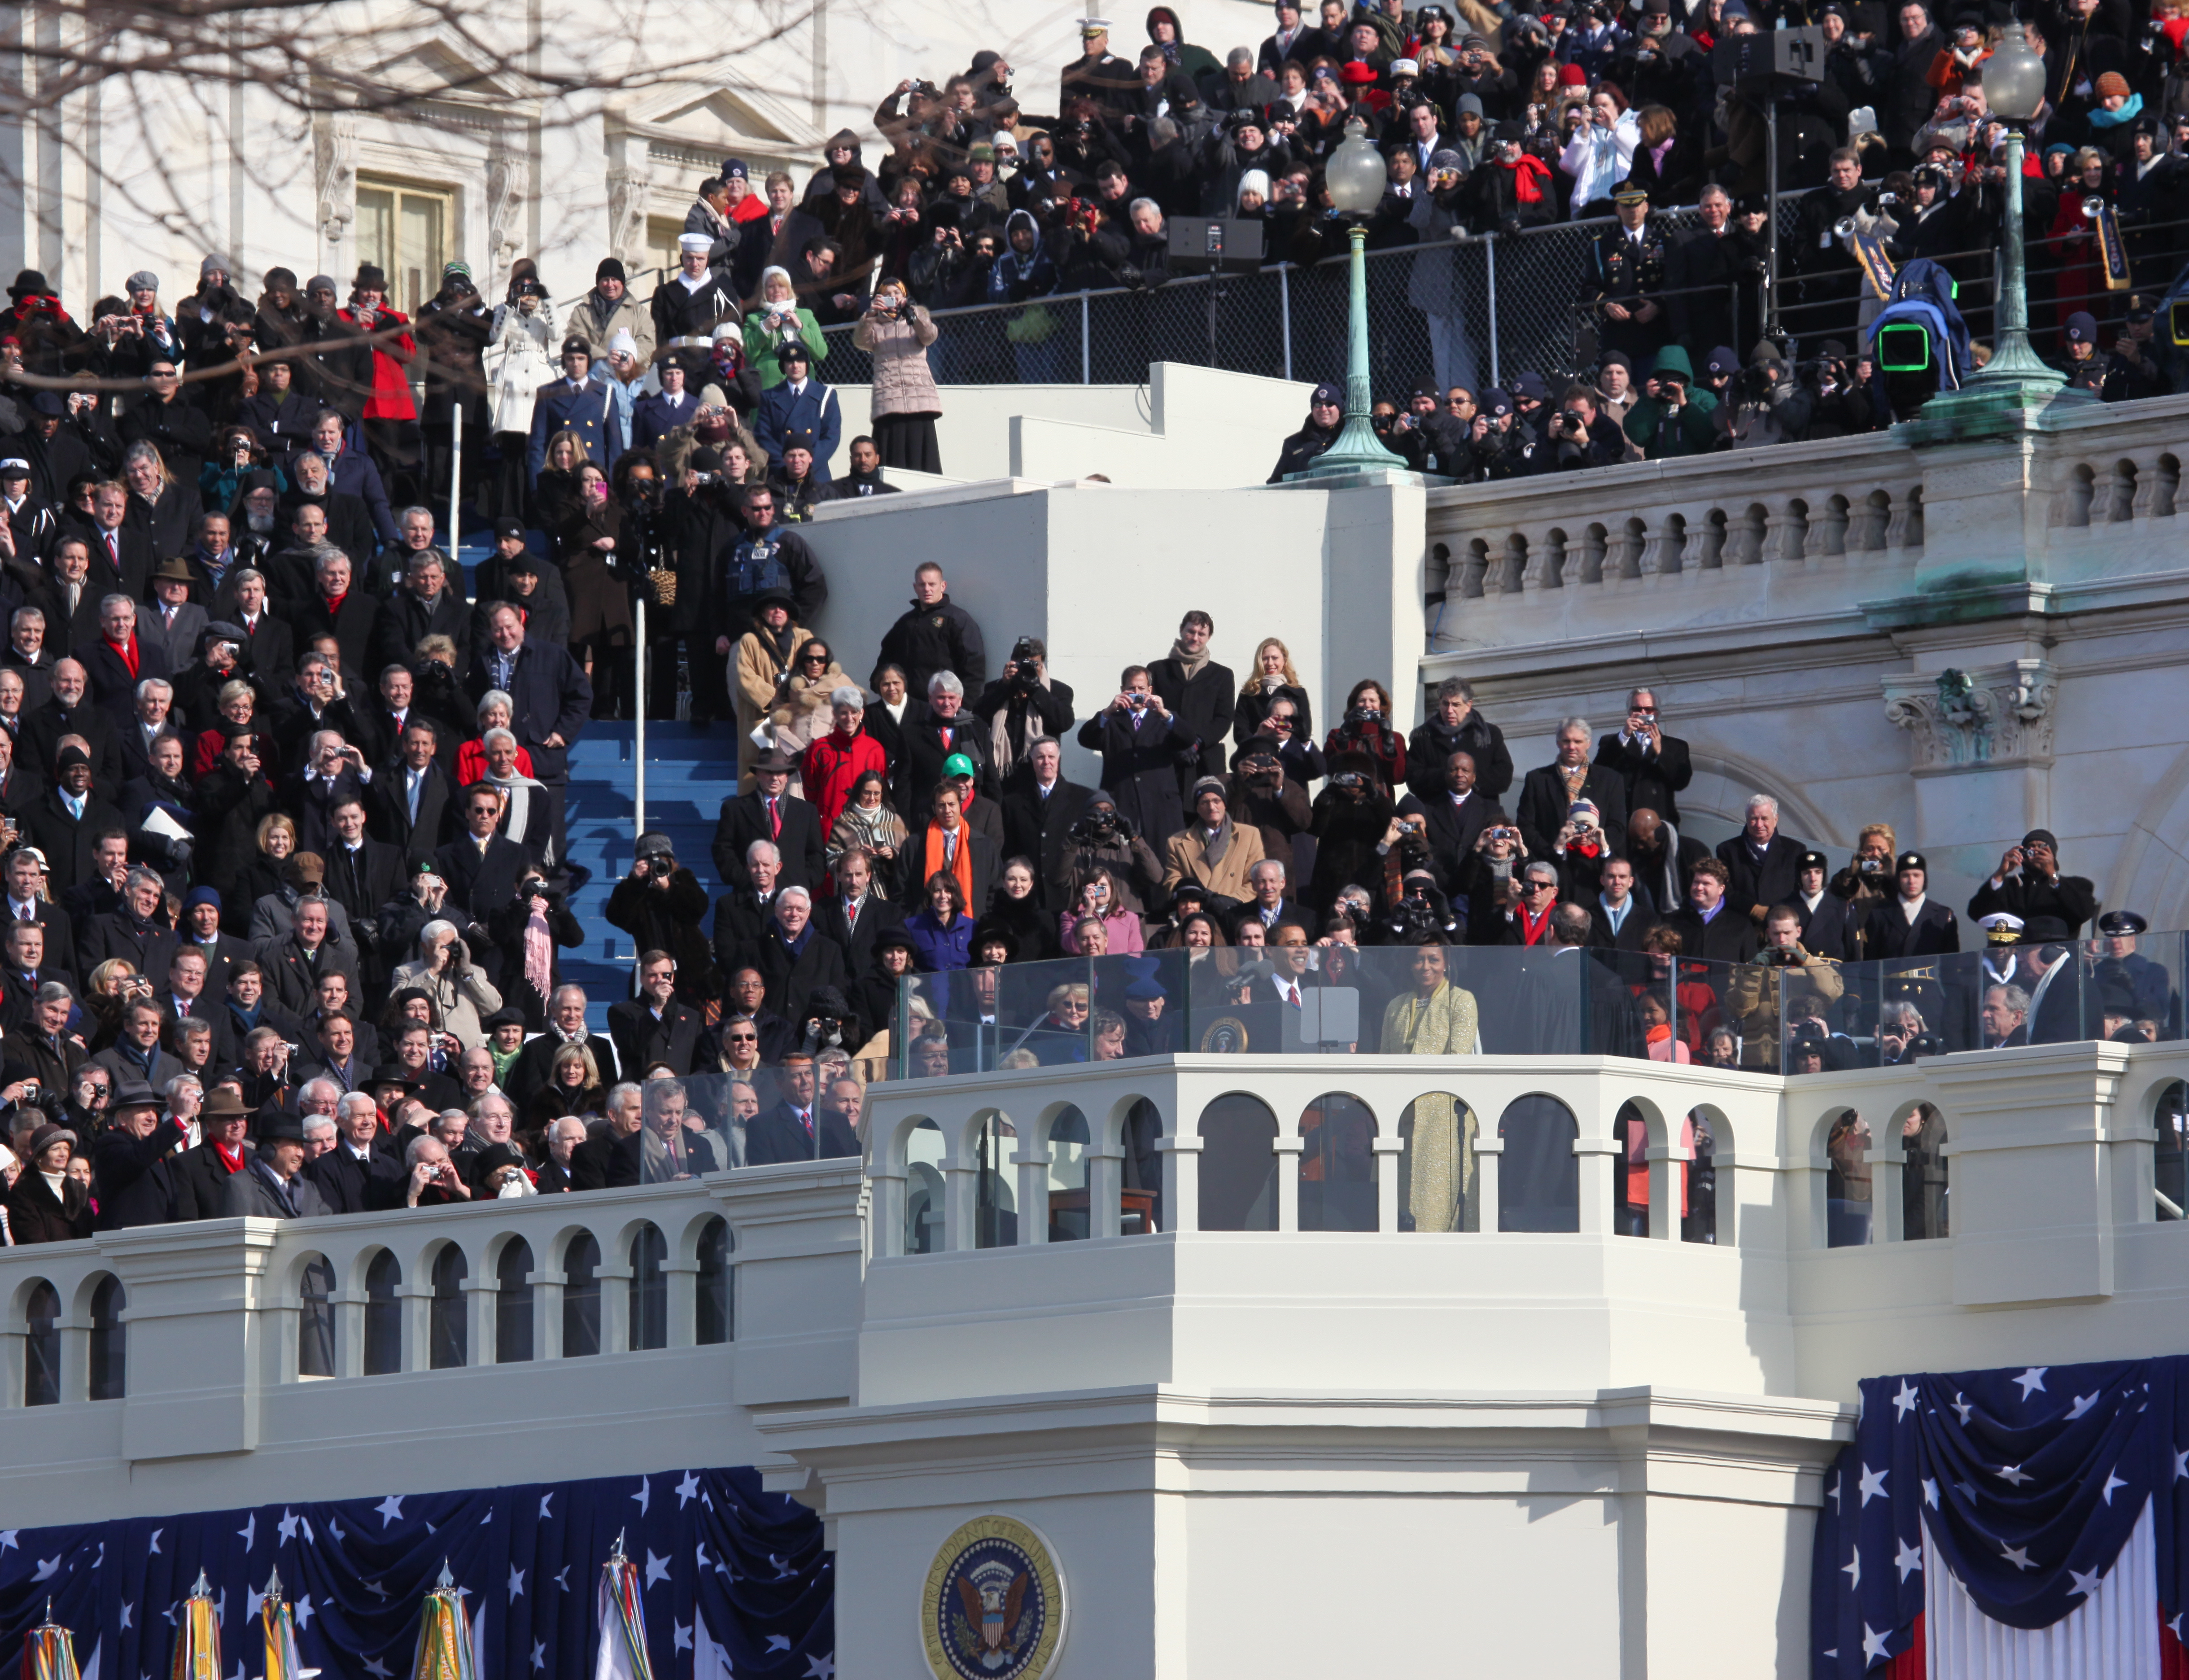 https://i2.wp.com/upload.wikimedia.org/wikipedia/commons/d/d6/Barack_Obama_Inauguration.jpg